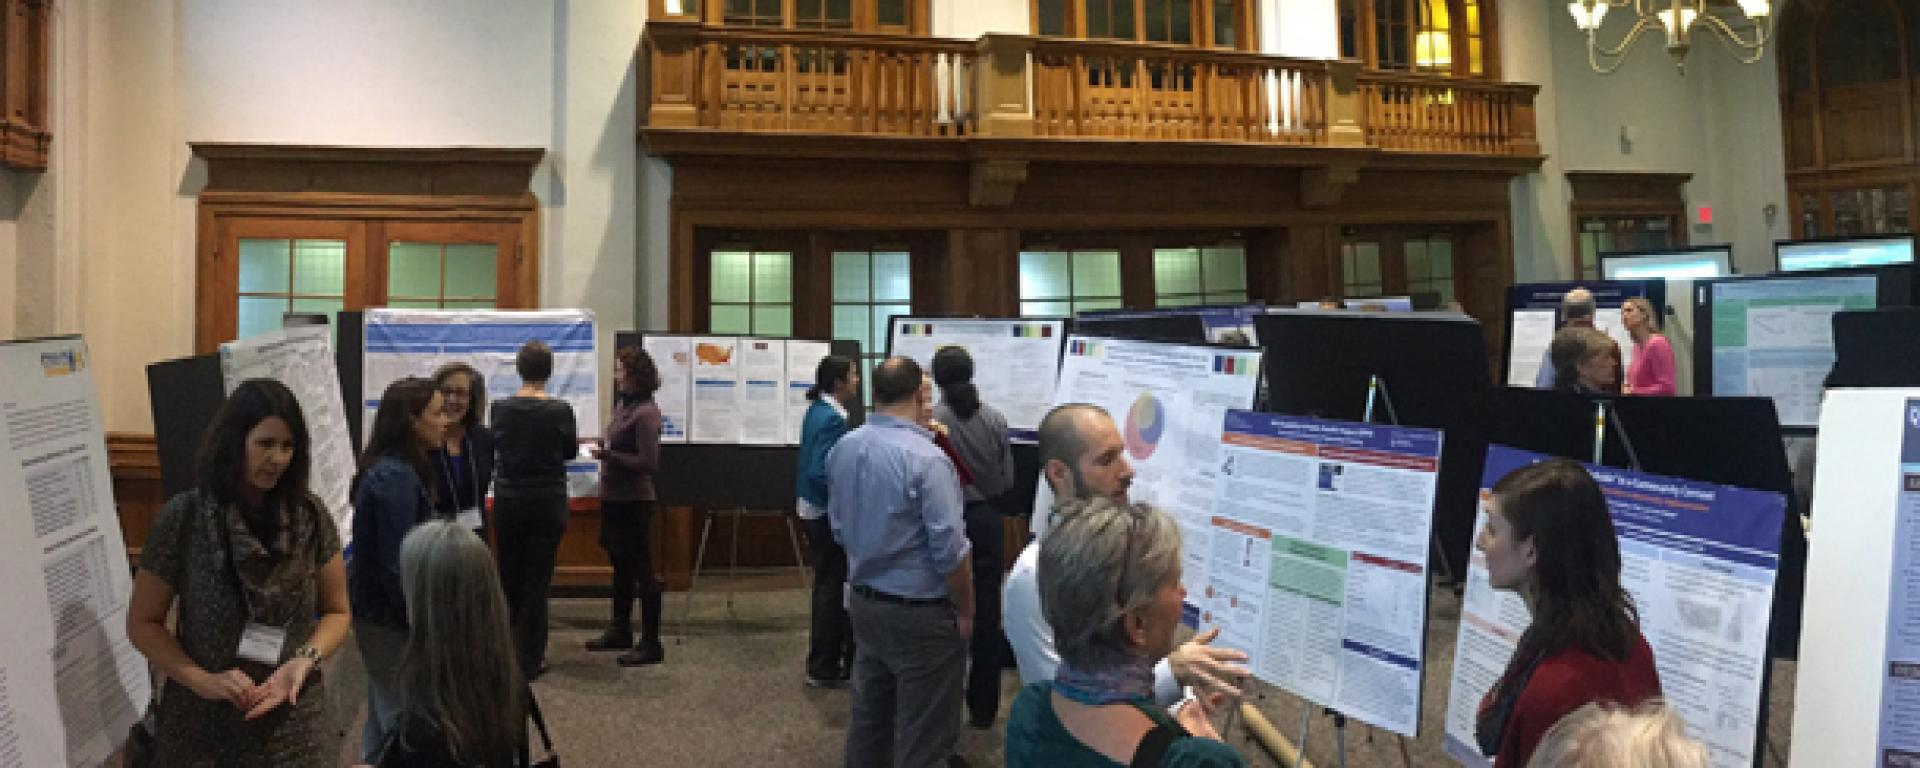 chhs research celebration poster event